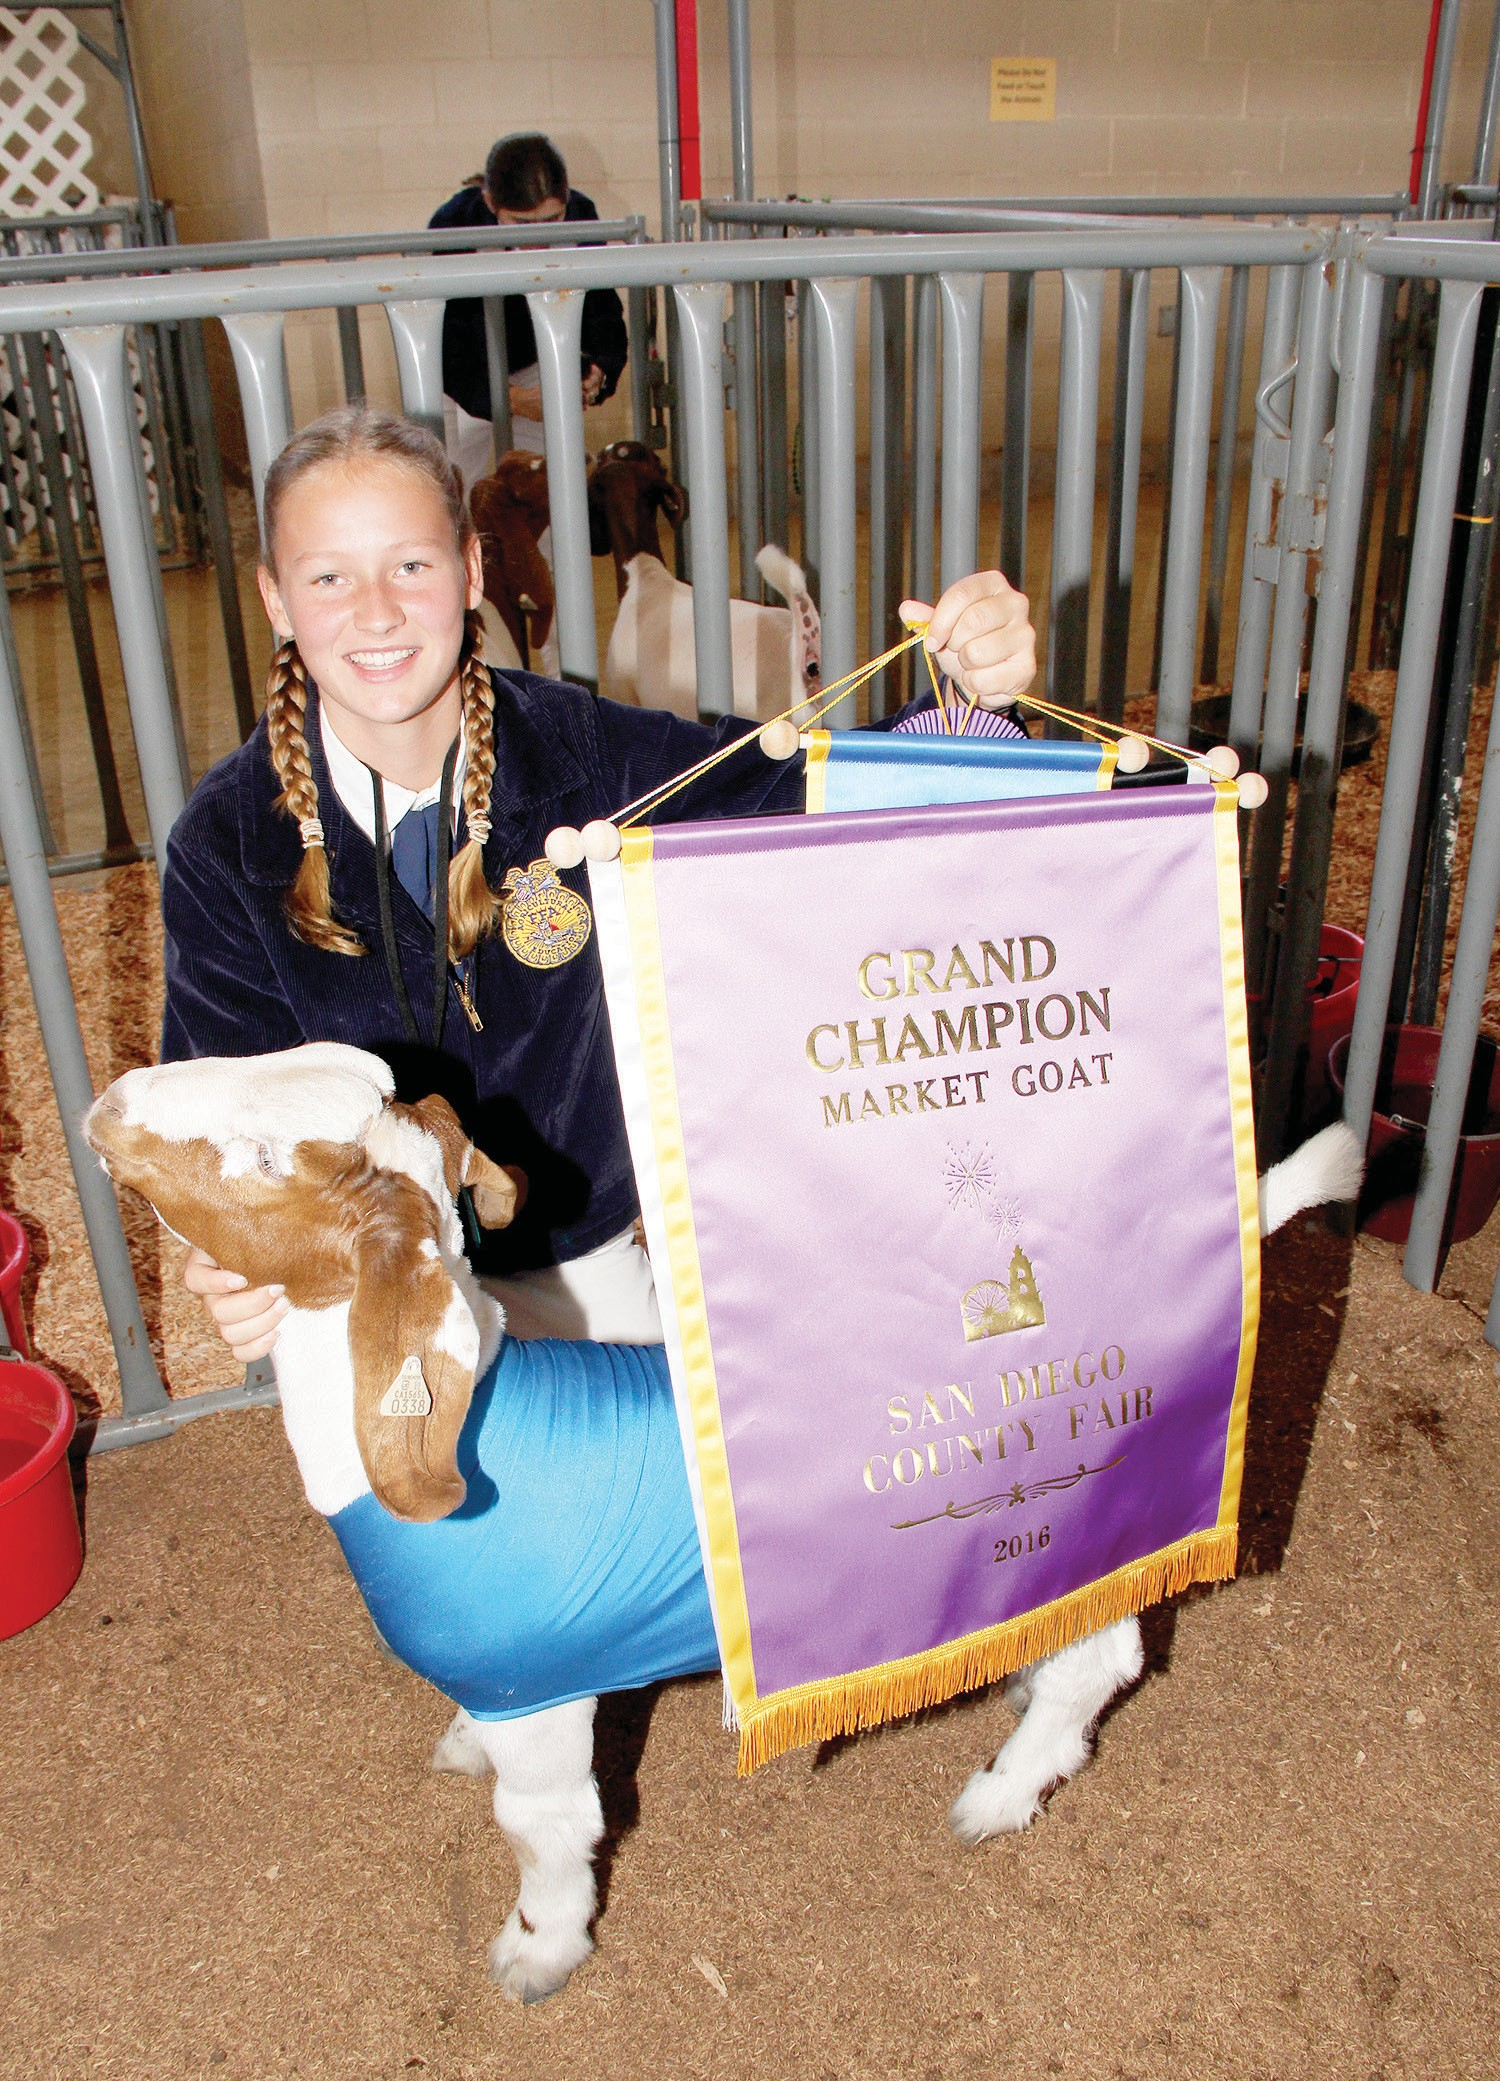 Multiple award winner Samantha Christiansen, age 14, of Escondido FFA with her goat Jet. She won several awards including Grand Champion Market Goat. She has previously entered pigs in the auction but said that this was her first experience with and goat and that it was such an awesome experience she would definitely do this again.